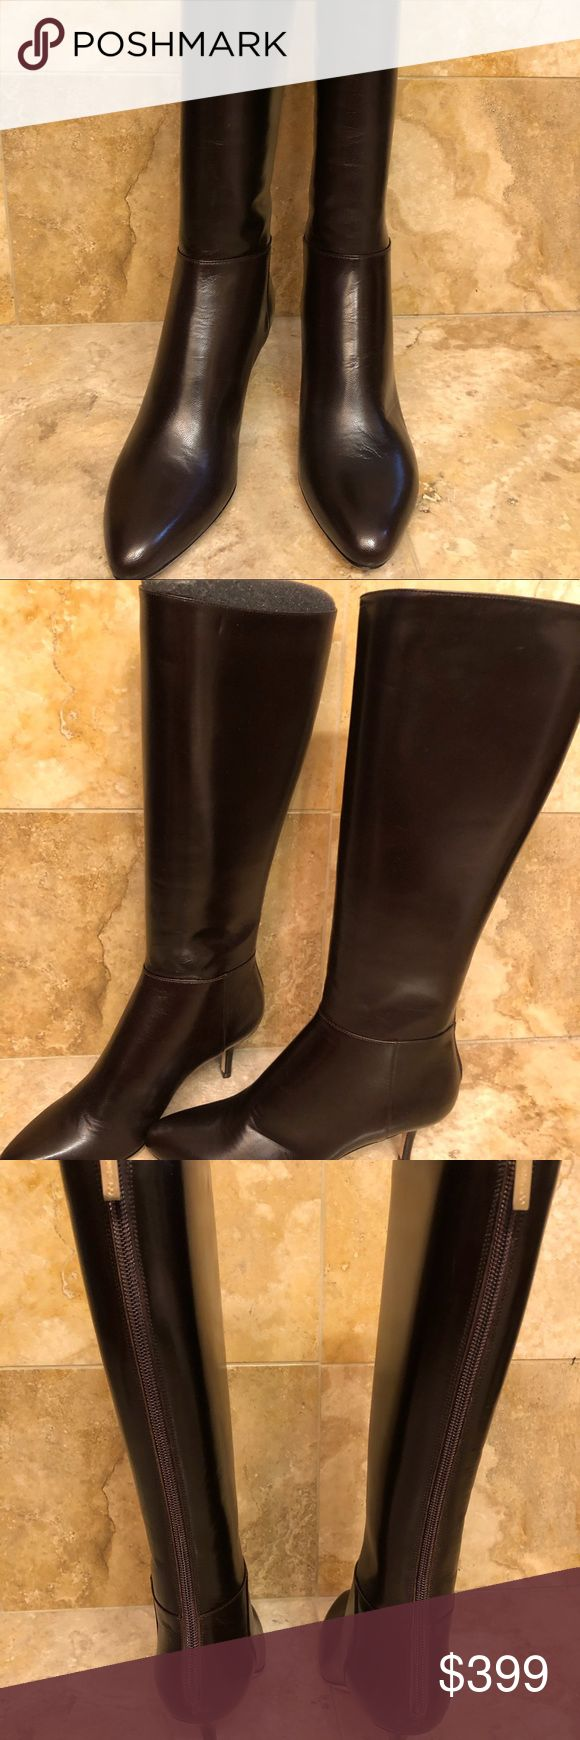 AUTHENTIC Jimmy Choo Dk. Brown Leather Boots Jimmy Choo dark brown leather boots…